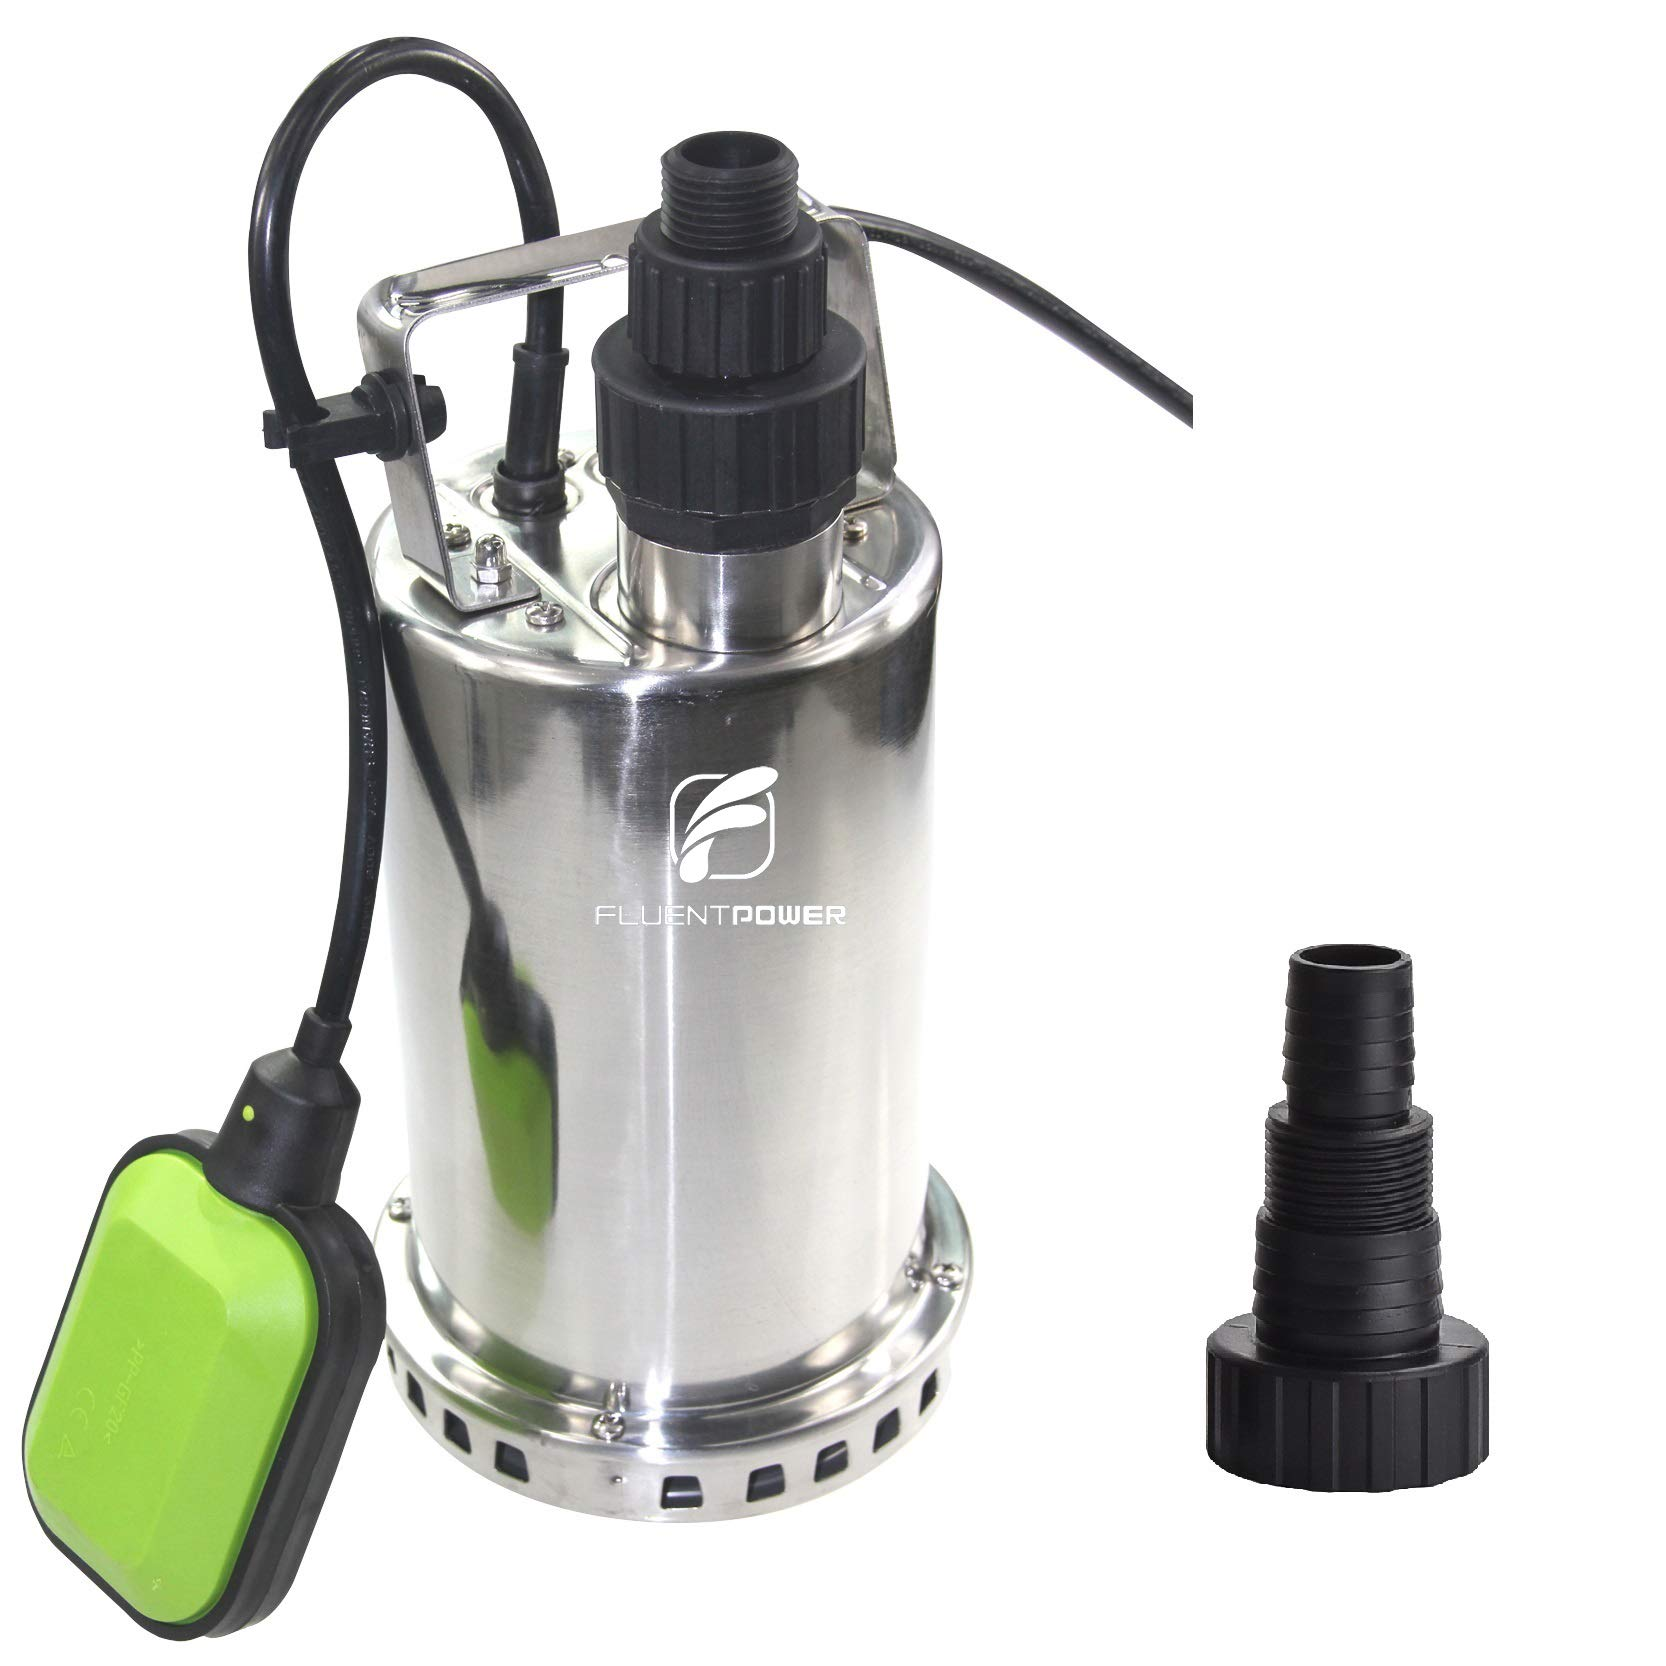 FLUENTPOWER 3/4 HP Utility Pump with Full Stainless Casing, Submersible Sump Water Pump with Float Switch,Max Lift 27 Ft and Max Flow 3300 GPH, 3/4'' Garden Hose Adapter and 1''&1.5'' MNPT Included by FLUENTPOWER